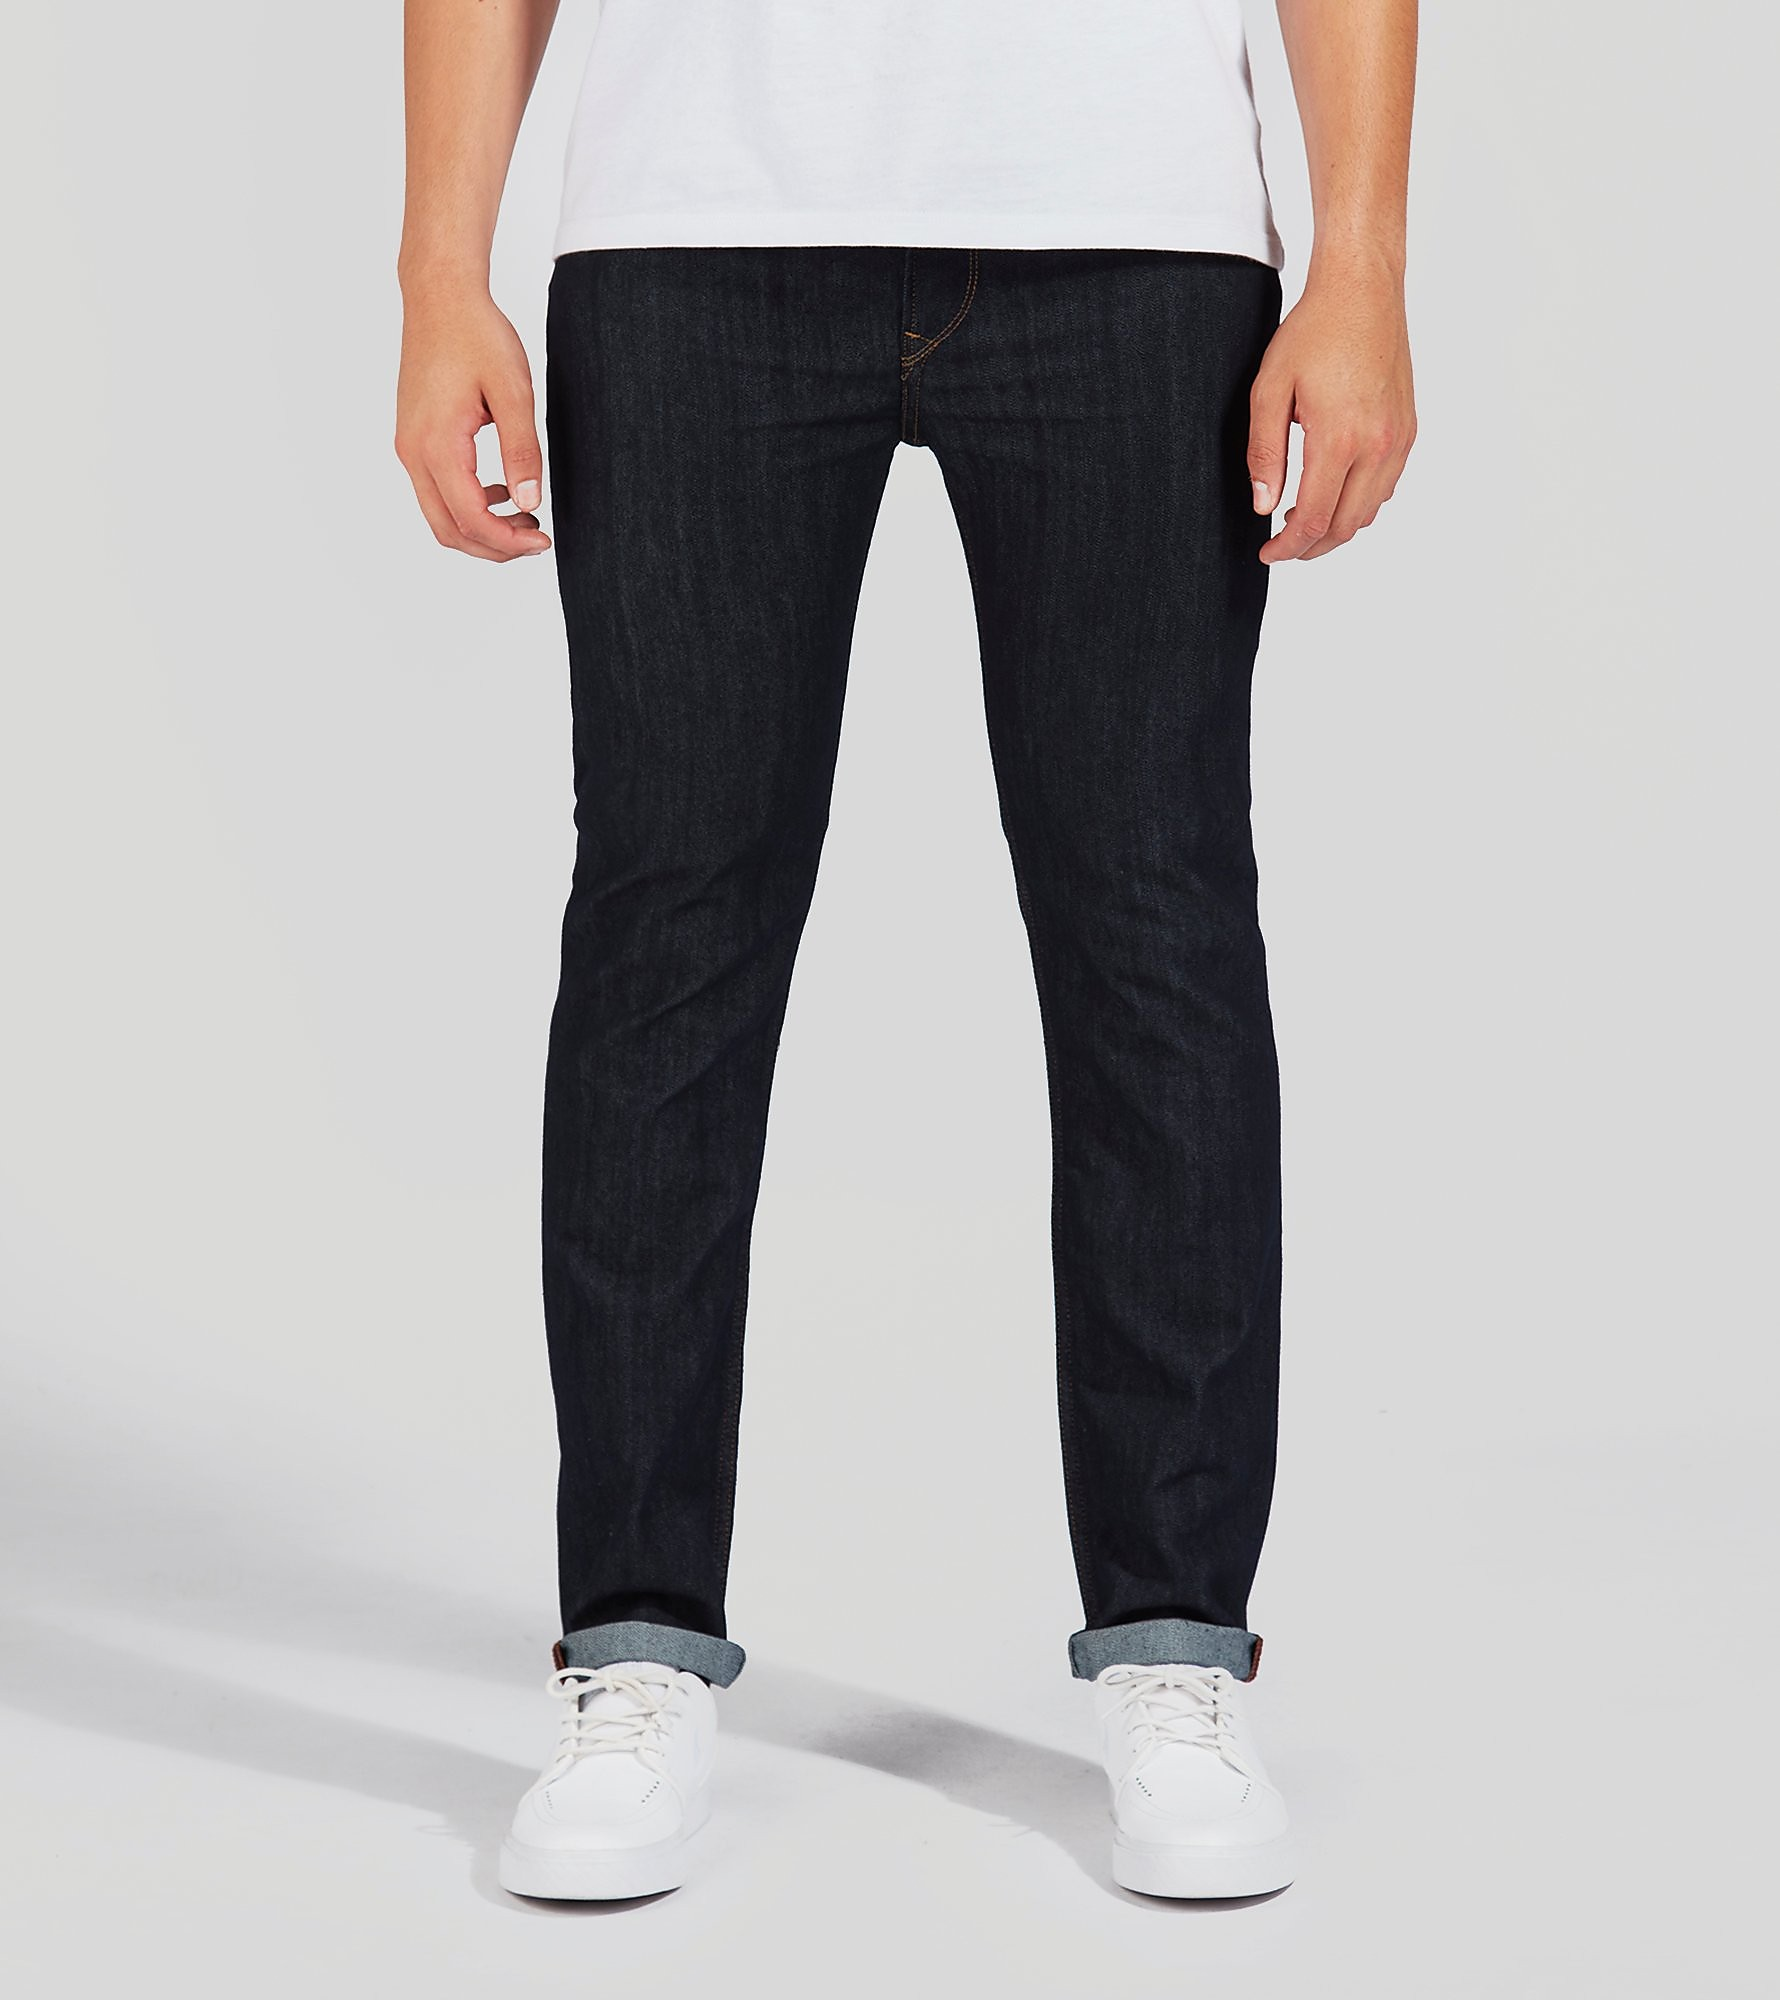 Lee Rider Regular Waist Slim Leg Jeans 'Rinse'